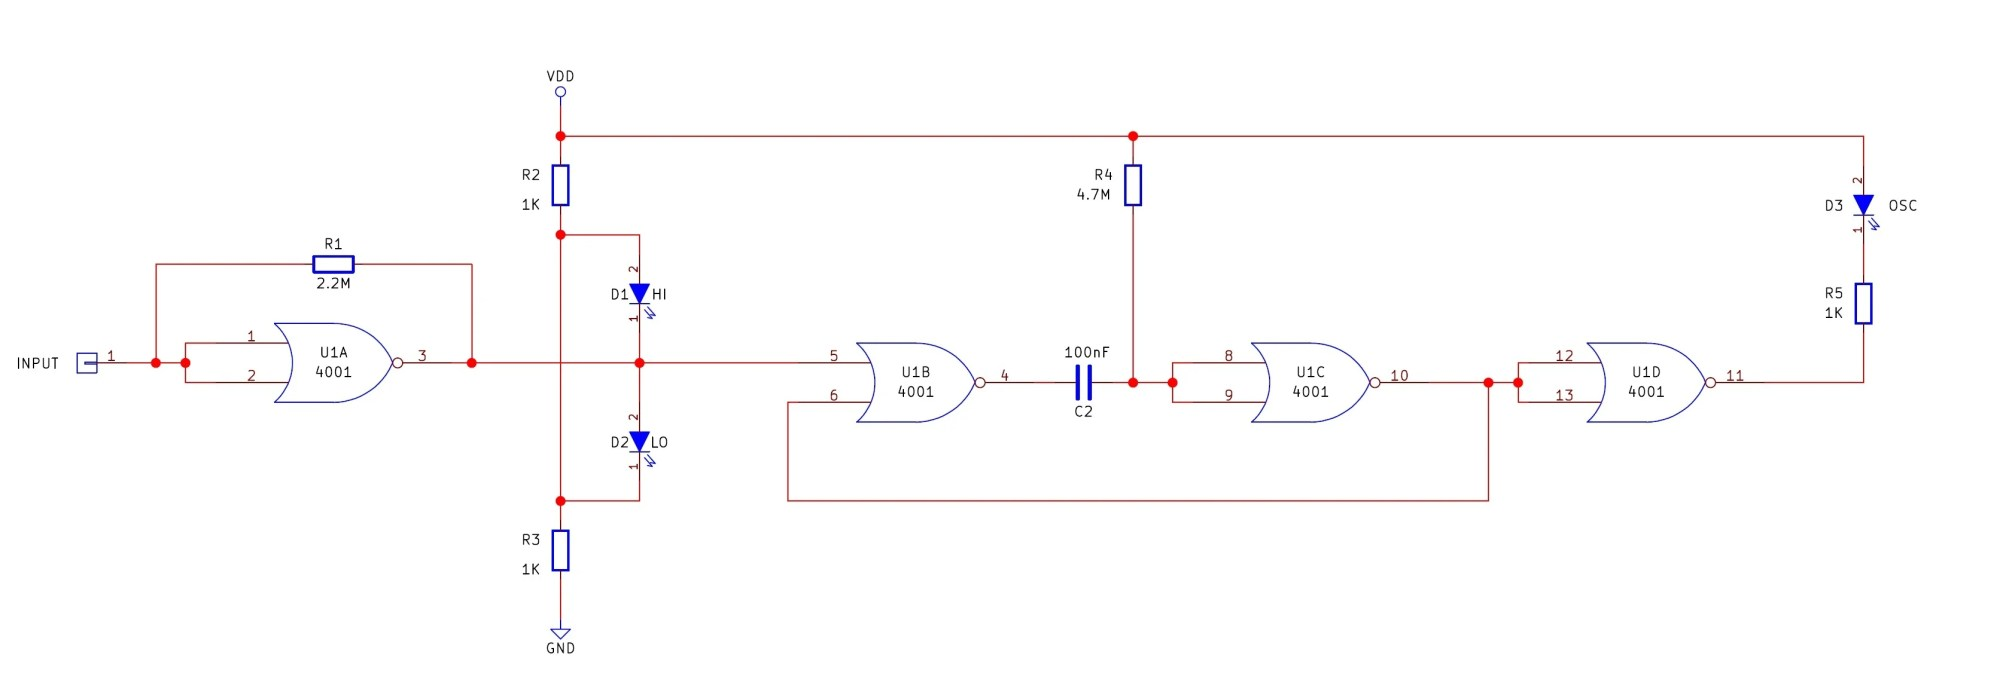 hight resolution of how to build logic probe circuit diagram schema wiring diagram circuit diagram logic probe circuit diagram parallel circuit diagram